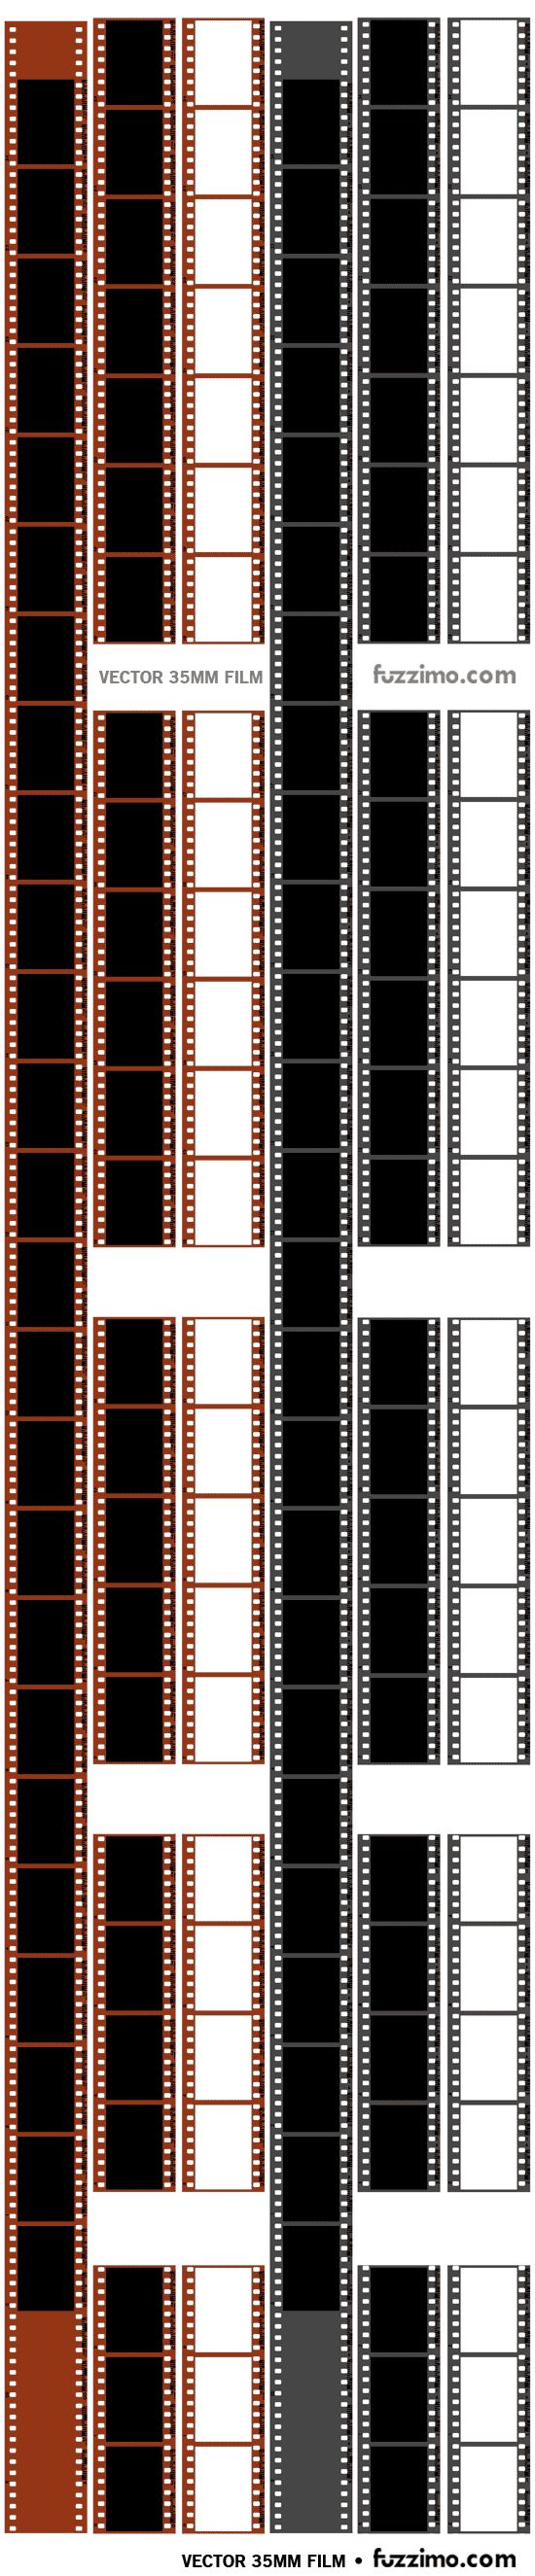 Free Vector 35mm Film Strips